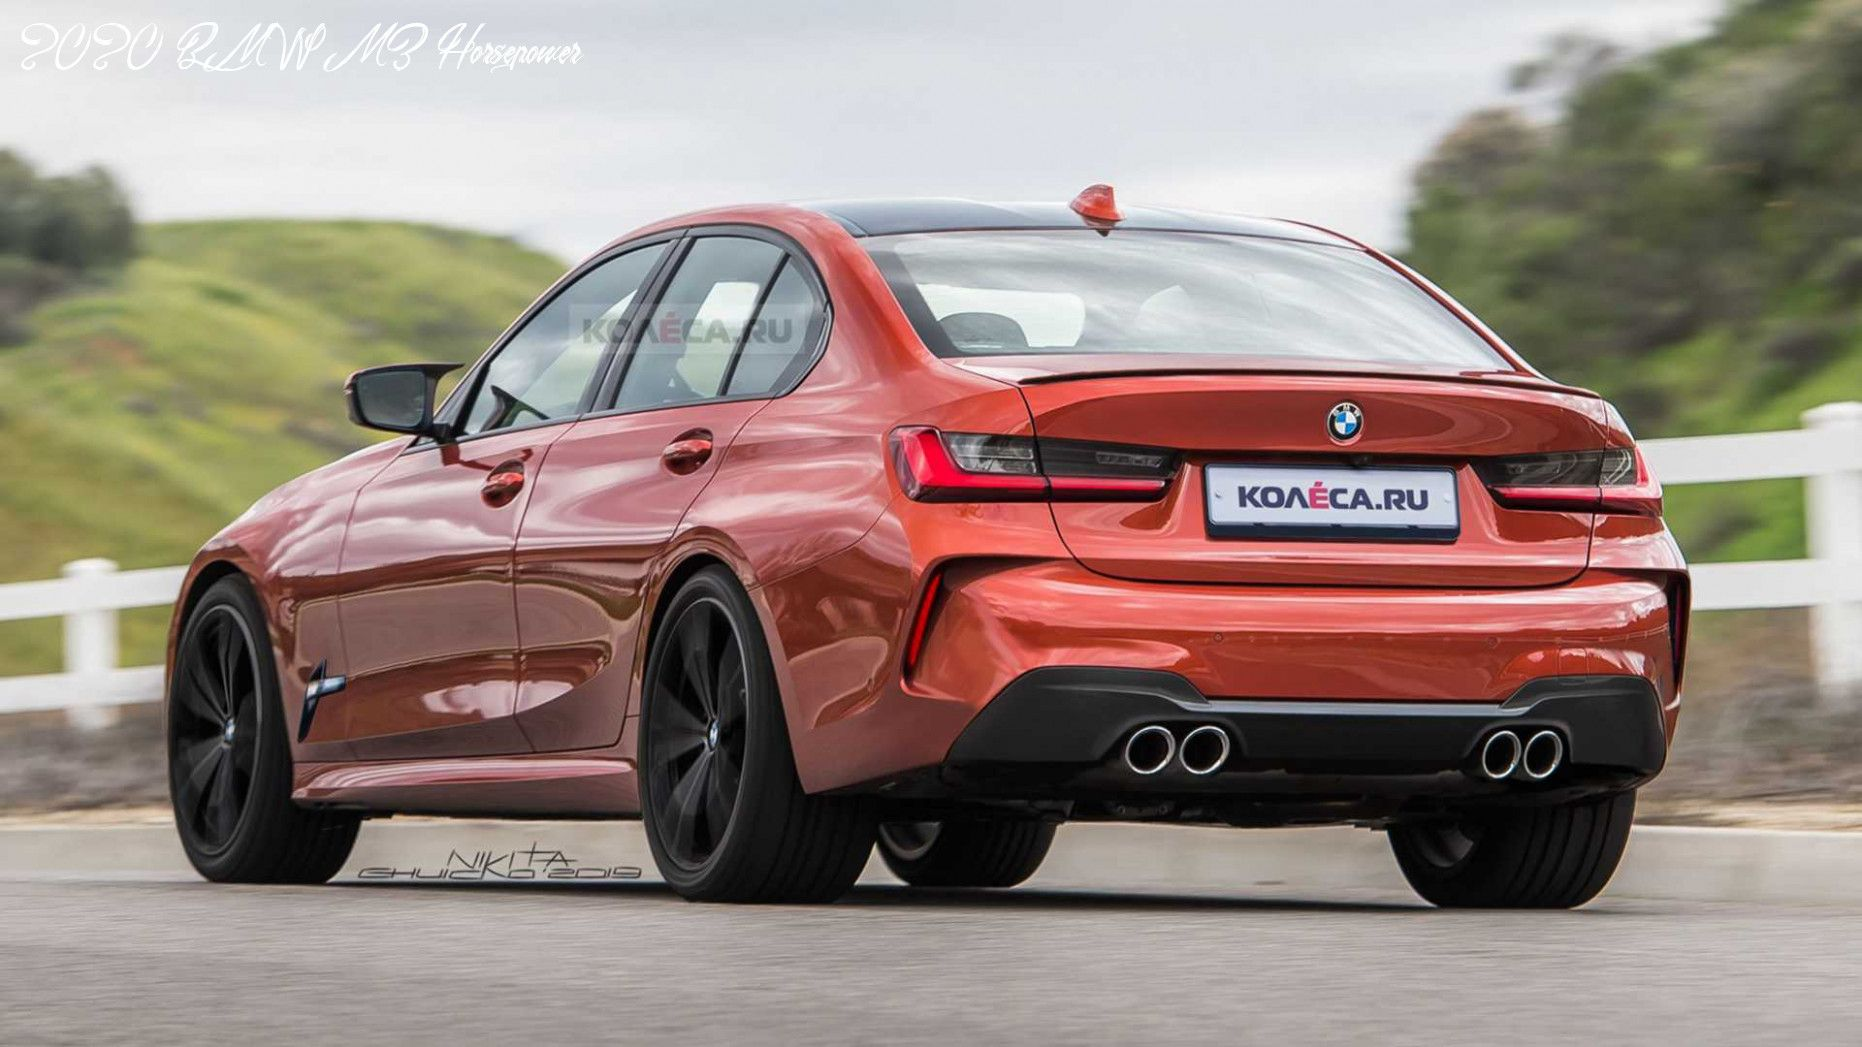 2020 Bmw M3 Horsepower Price And Review In 2020 Bmw M3 New Bmw Bmw